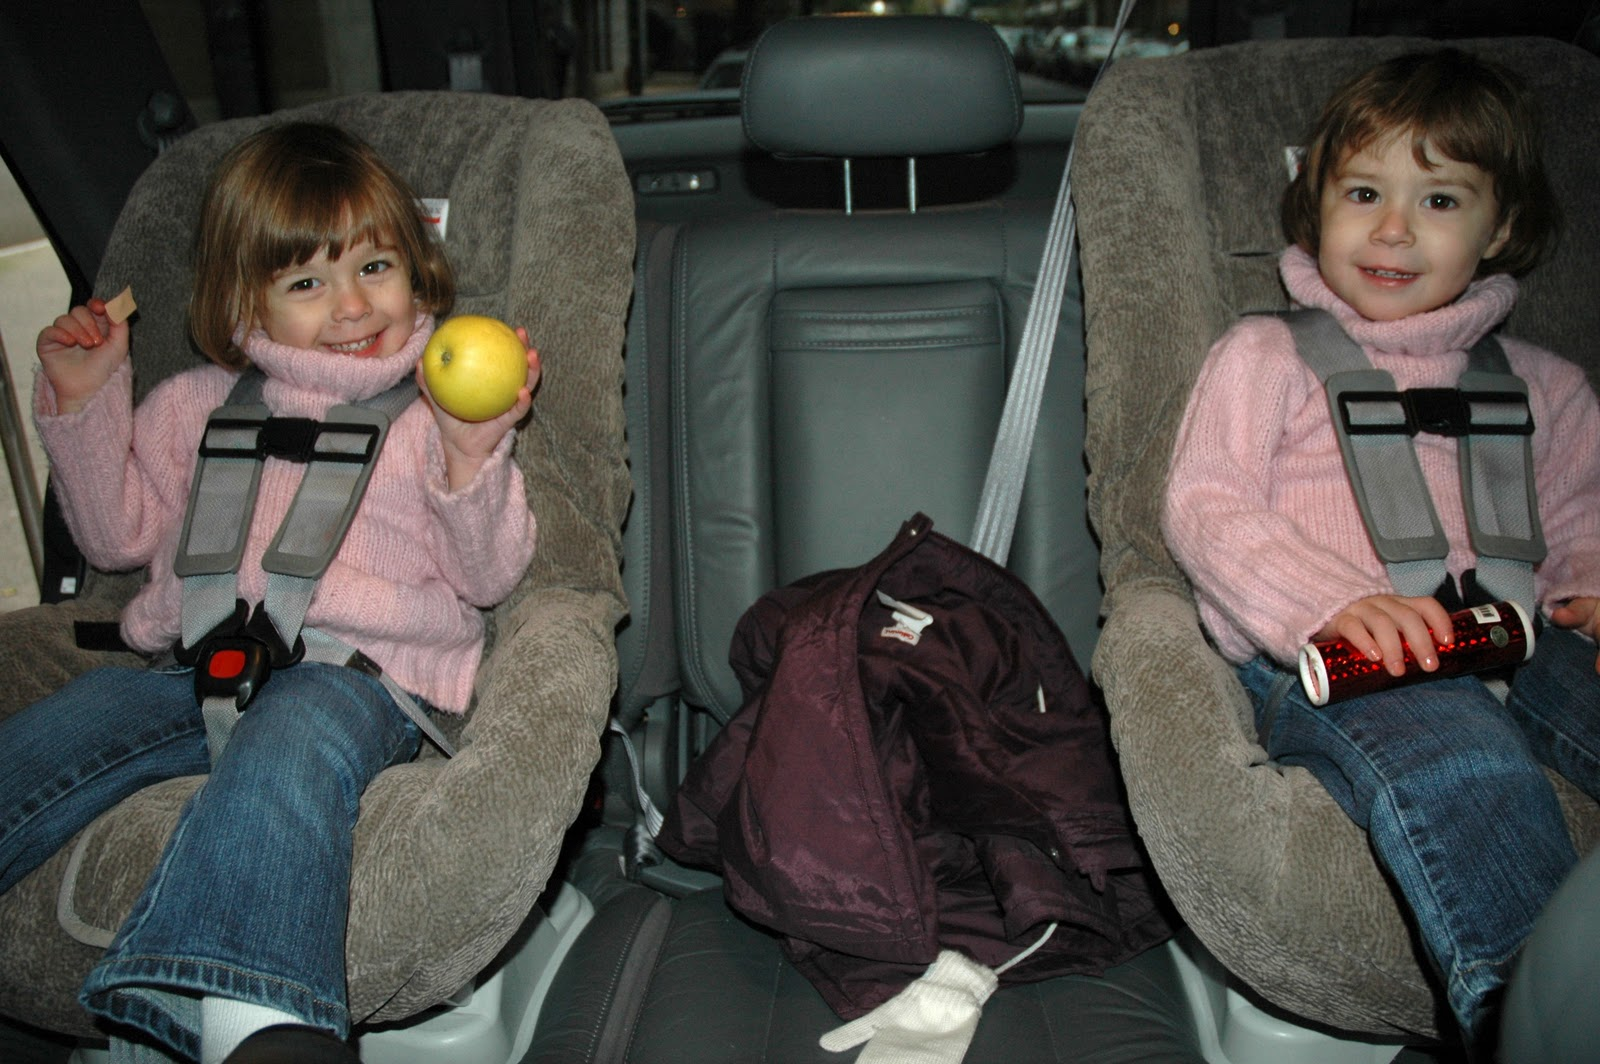 Most Coats Amp Car Seats Are Not A Safe Combo Learn How